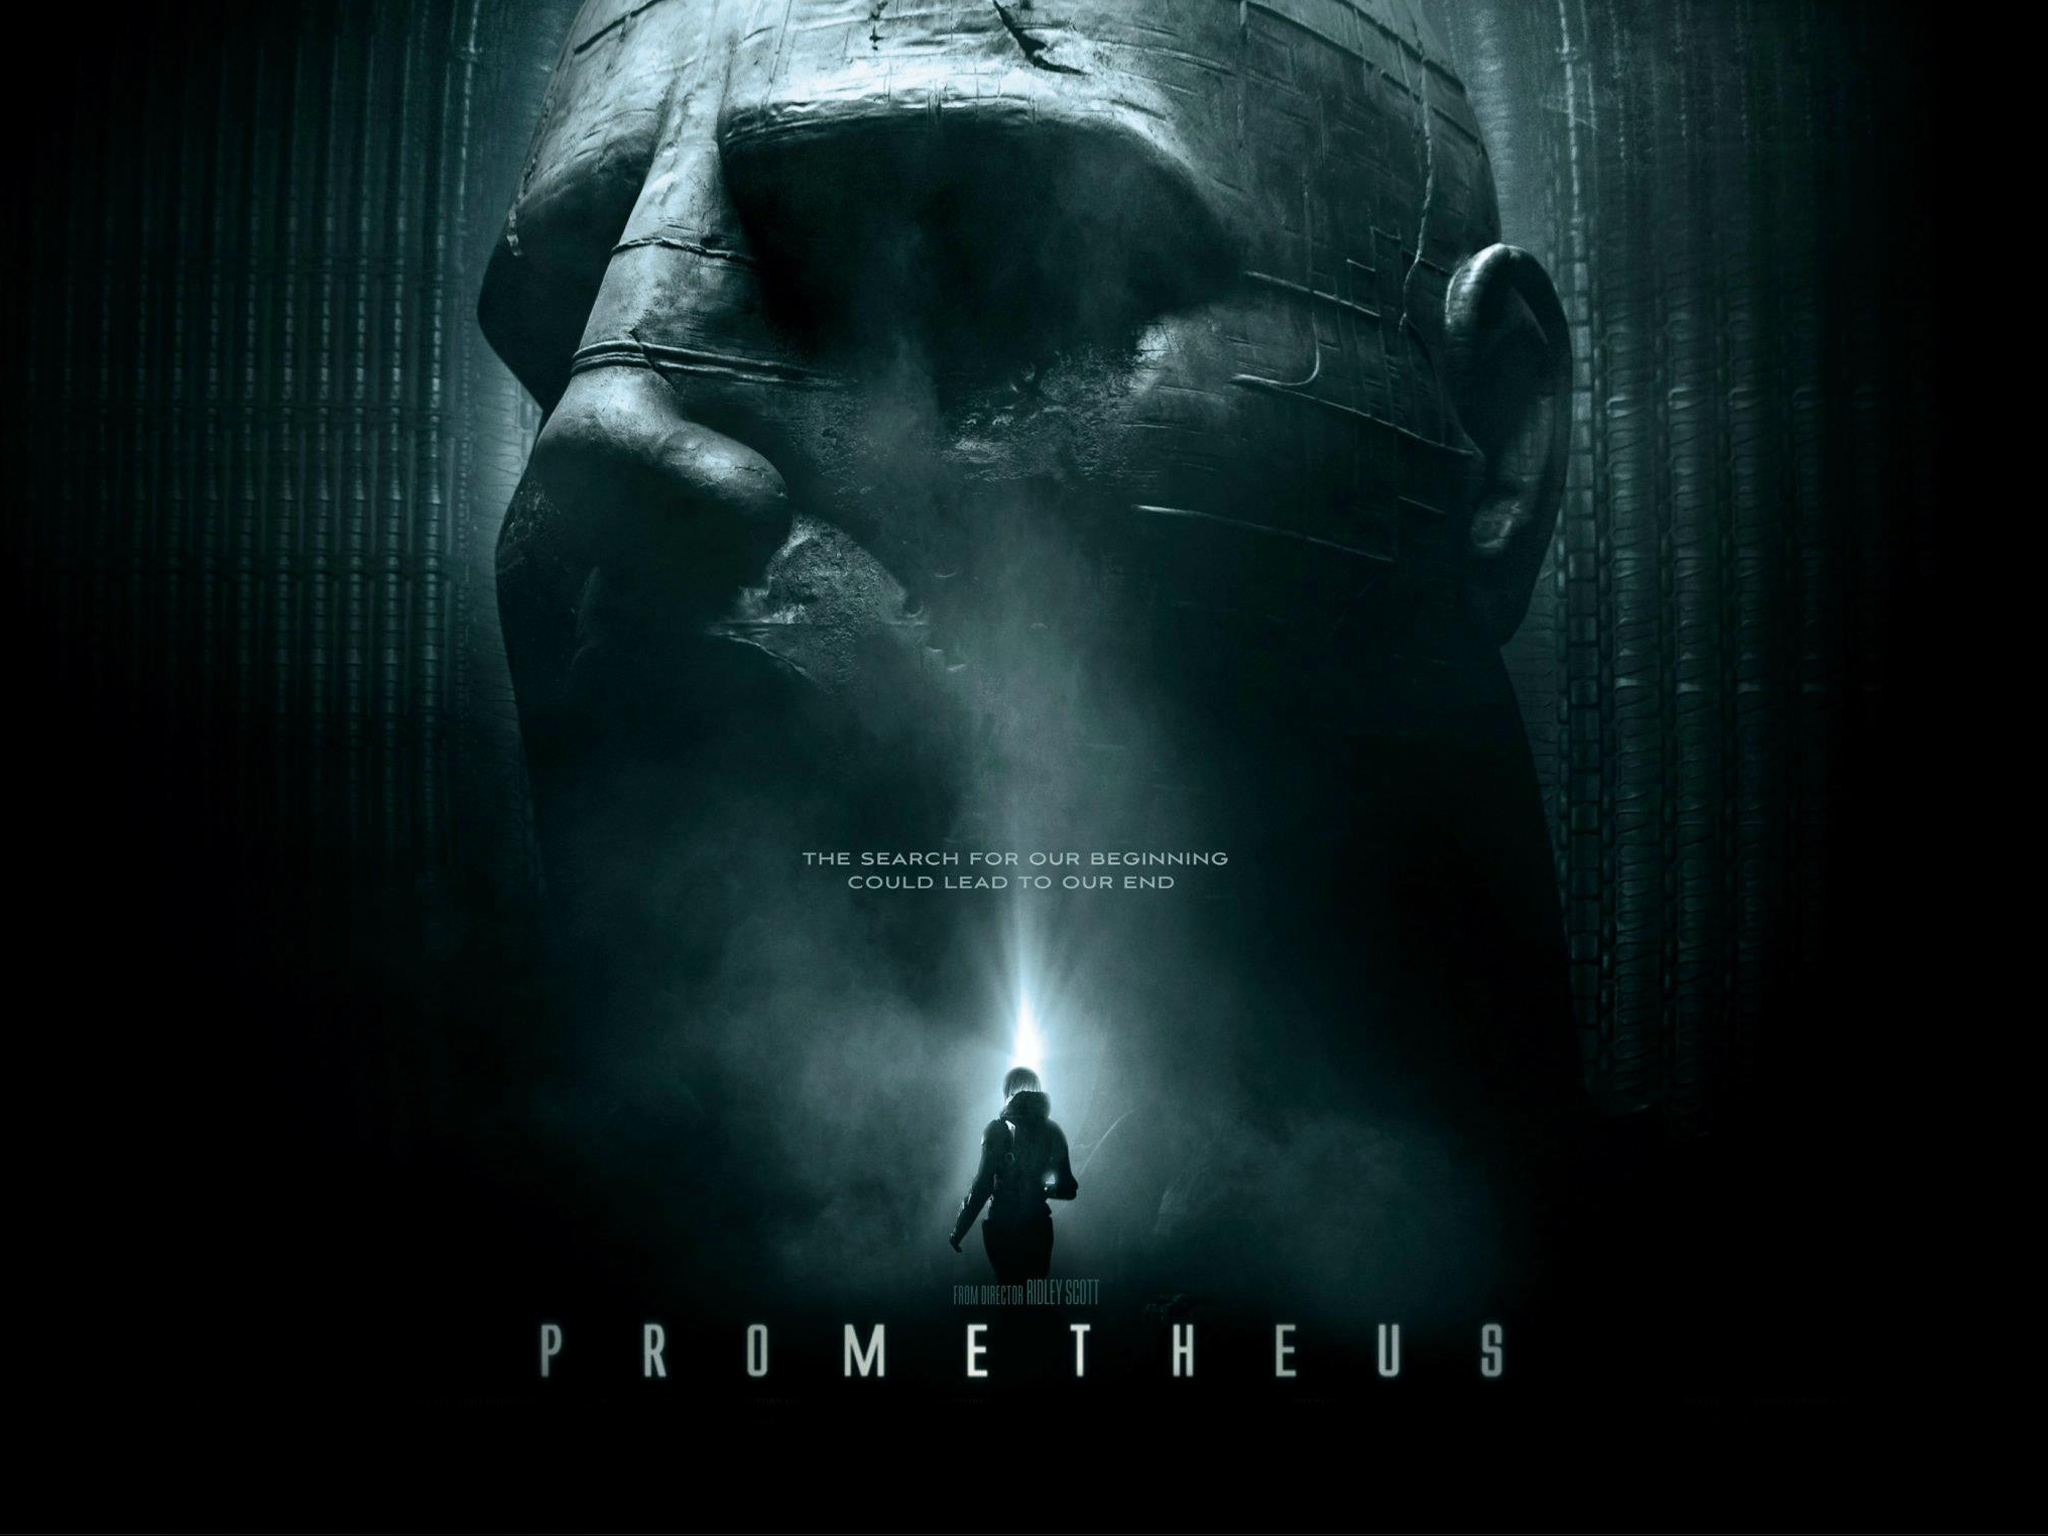 Prometheus 2012 film prometheus wallpaper 4